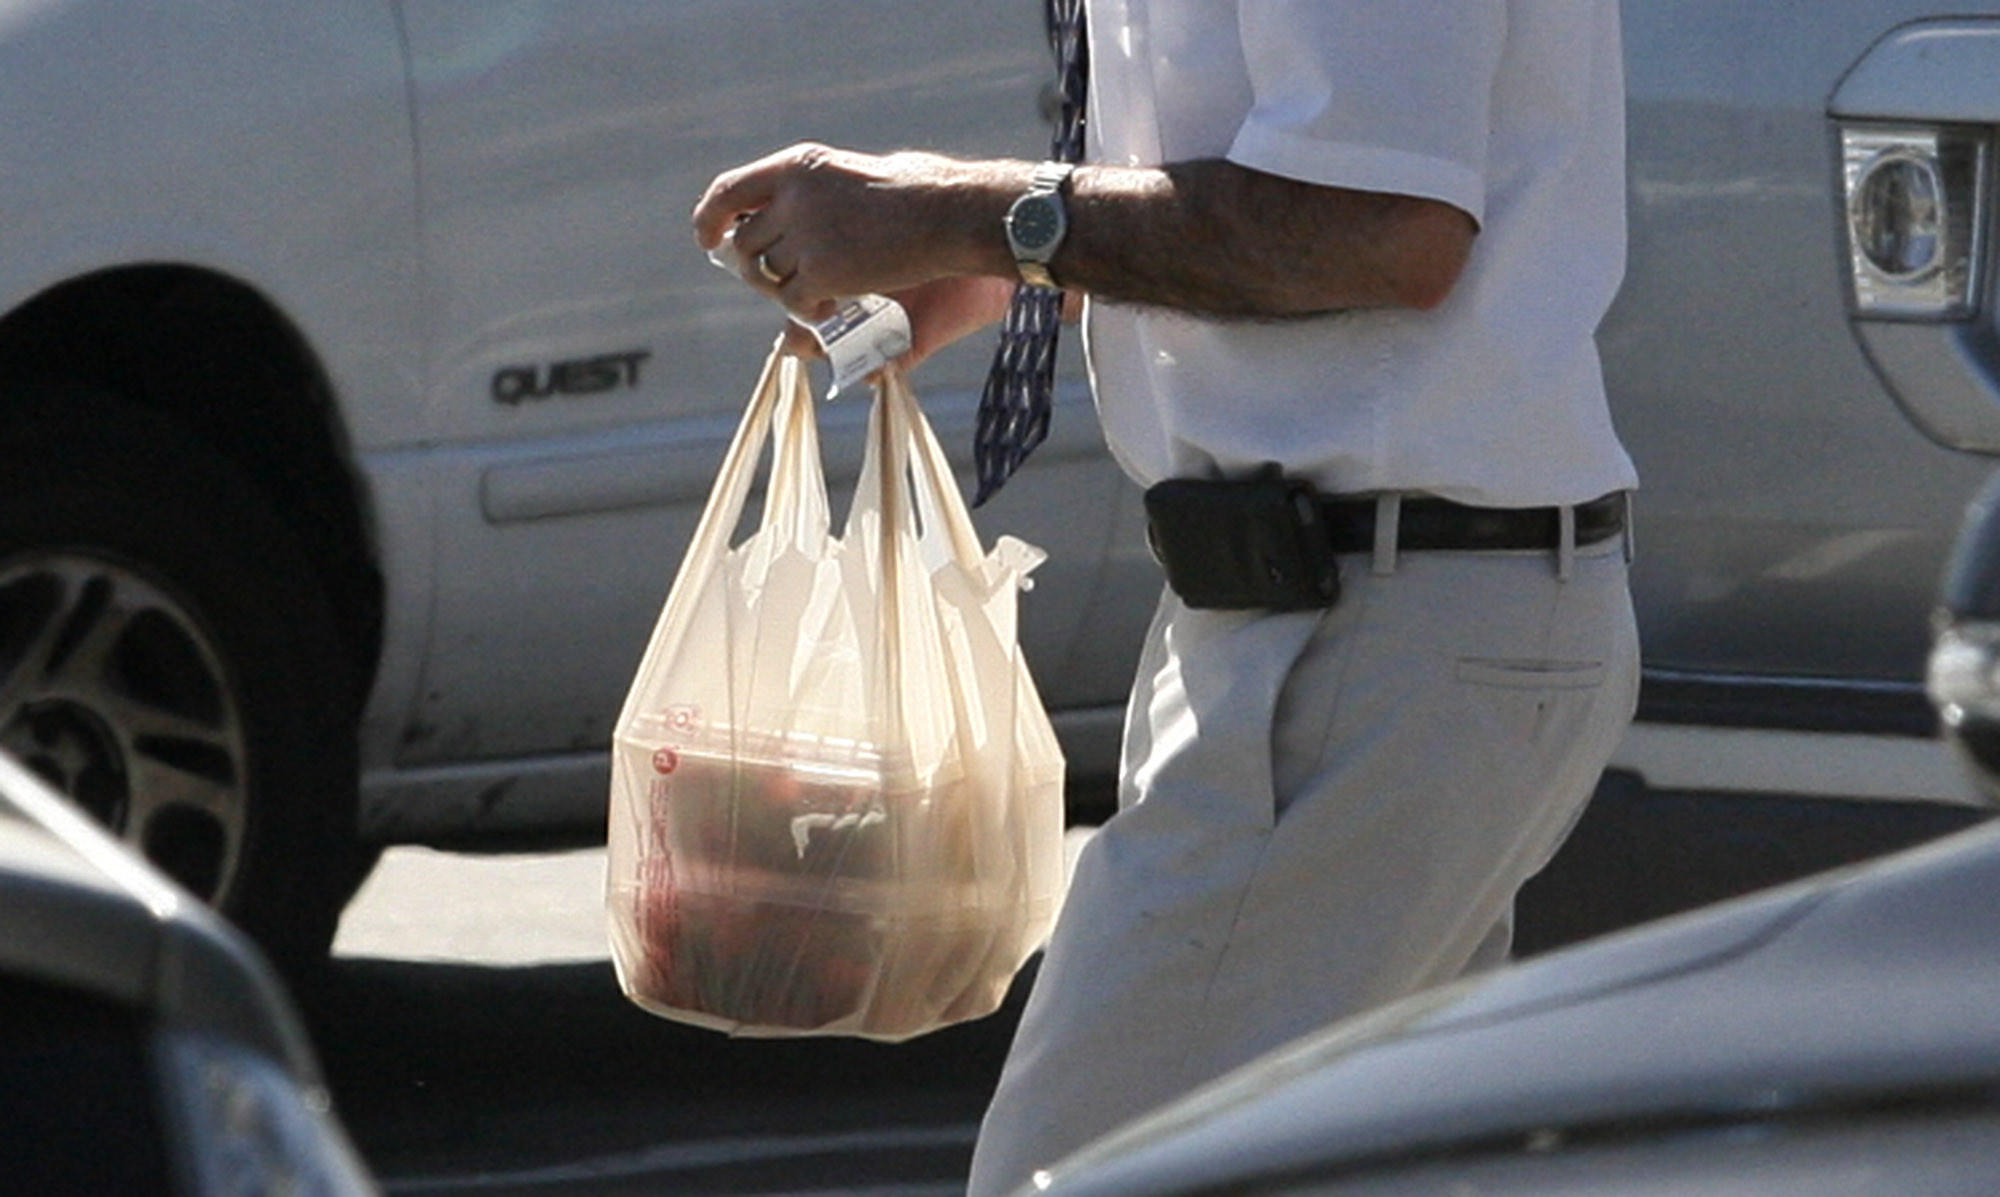 An attempt to get initiative repealing ban of plastic bags has failed so far in Huntington Beach.